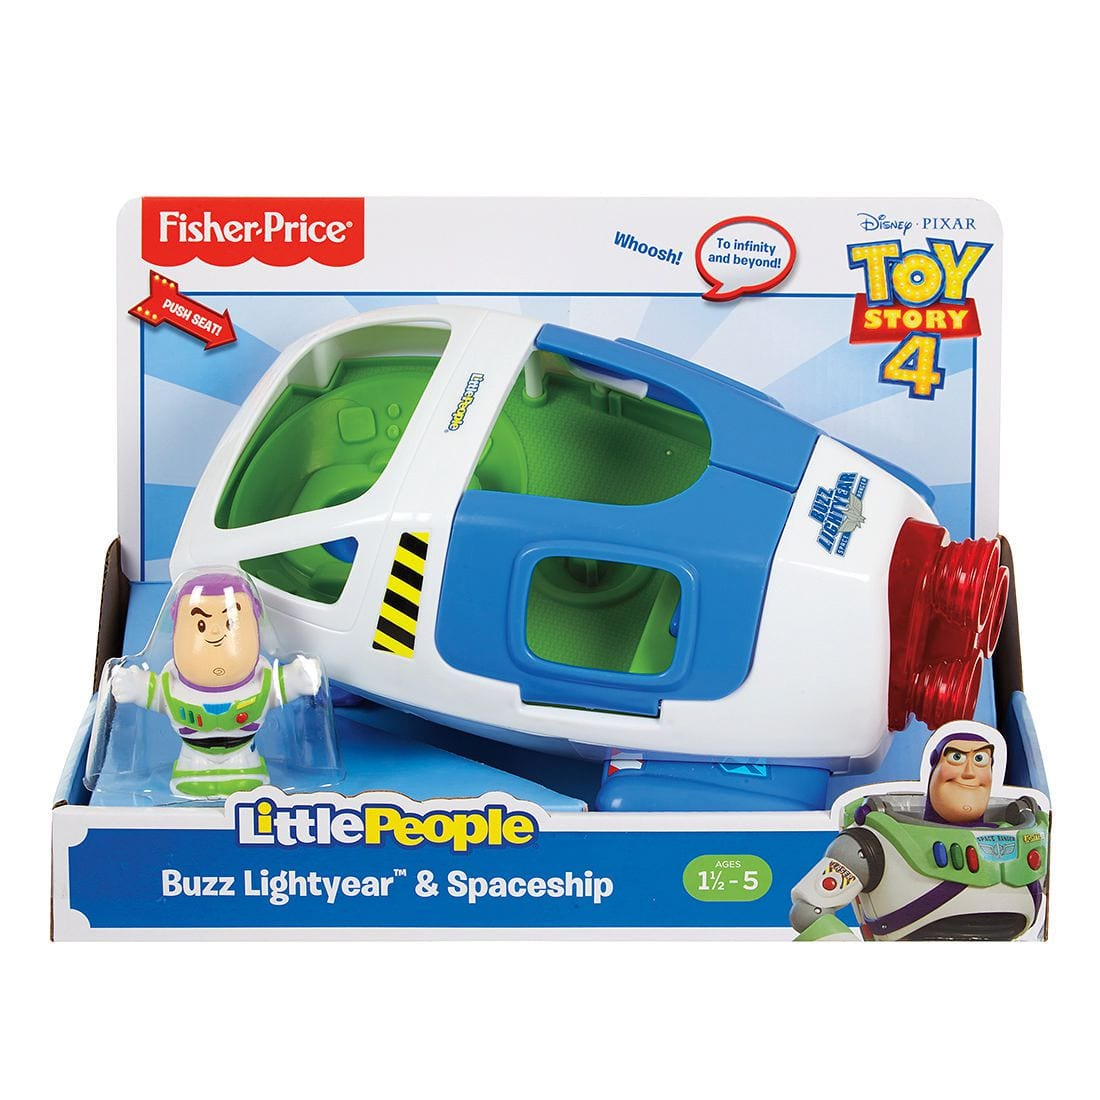 Toy Story 4 Fisher Price Little People Talking Buzz & Spaceship